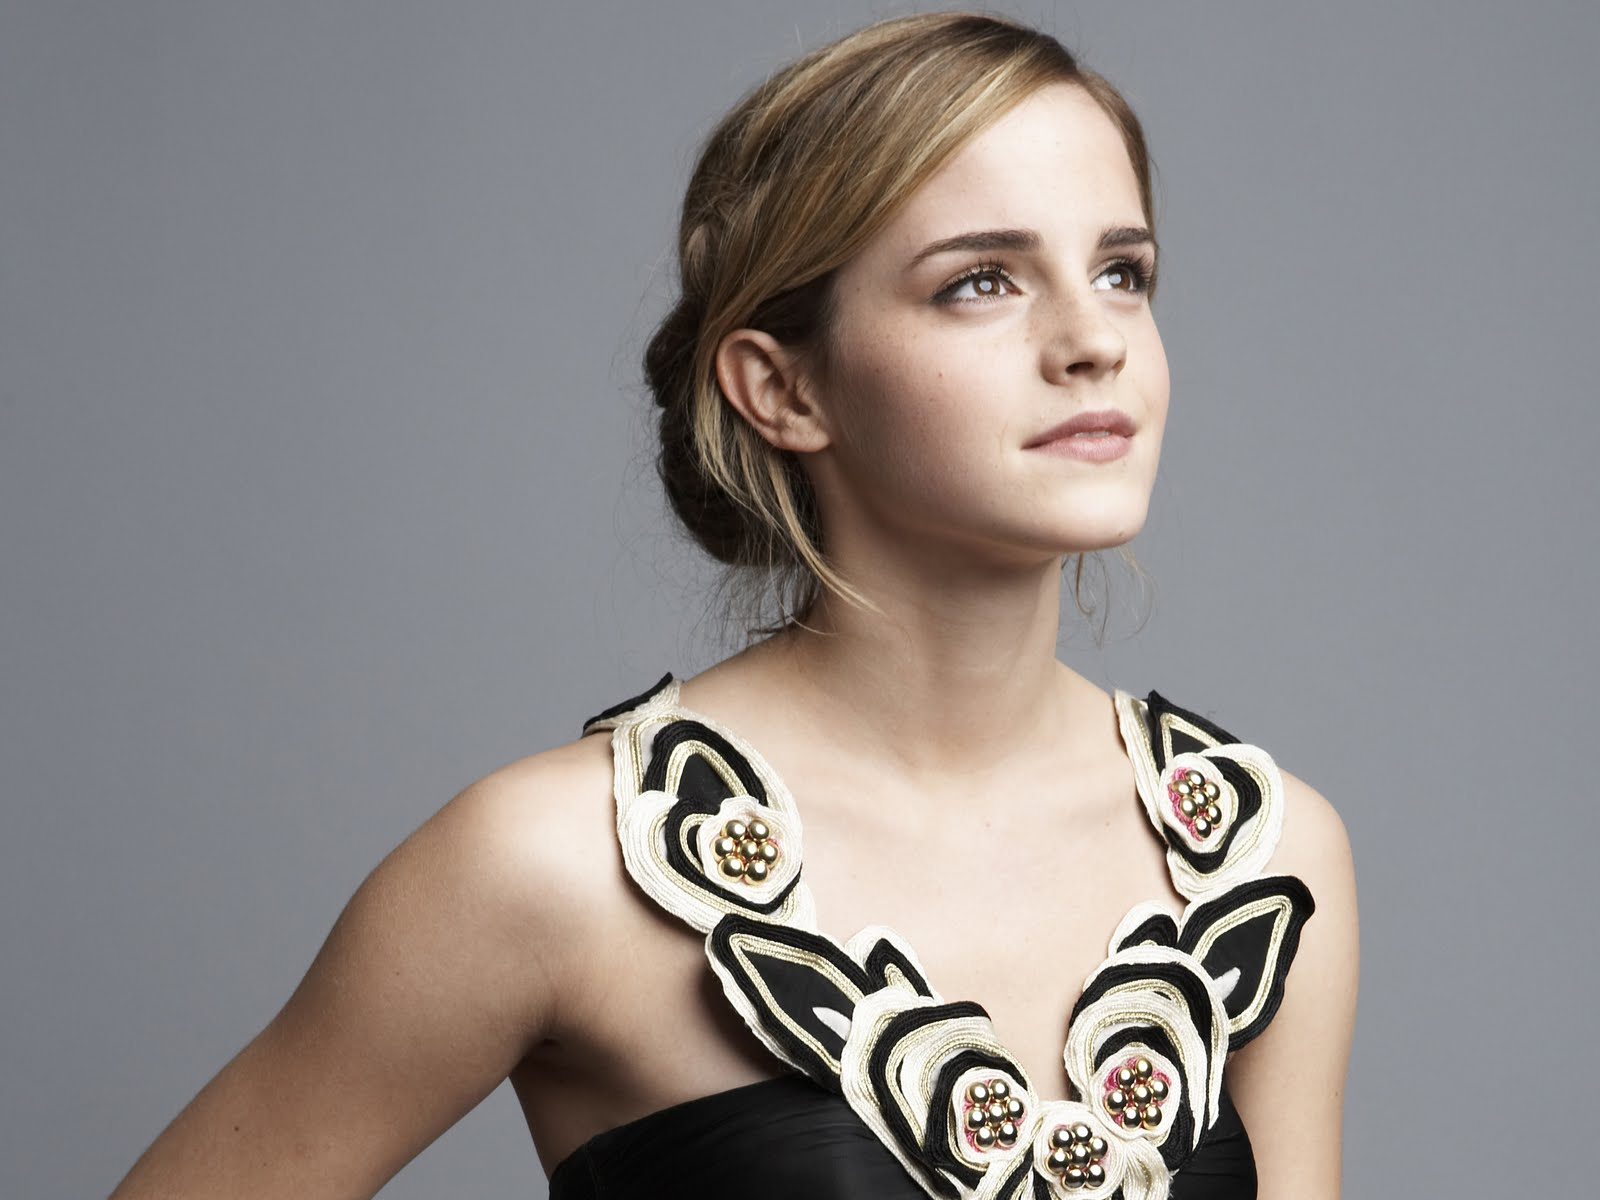 http://3.bp.blogspot.com/_vClfjdJc8Jk/TU0W3J8XhcI/AAAAAAAAFOA/dSJPKH-ozng/s1600/beautiful-emma-watson--Love-wallpapers-romantic-Creative-crazy%2Badvertisements-jagodunya-funny-pictures-2011-jago-dunya-cute-babies-indian-wallpapers-global-beena-malik-pictures-0.jpg